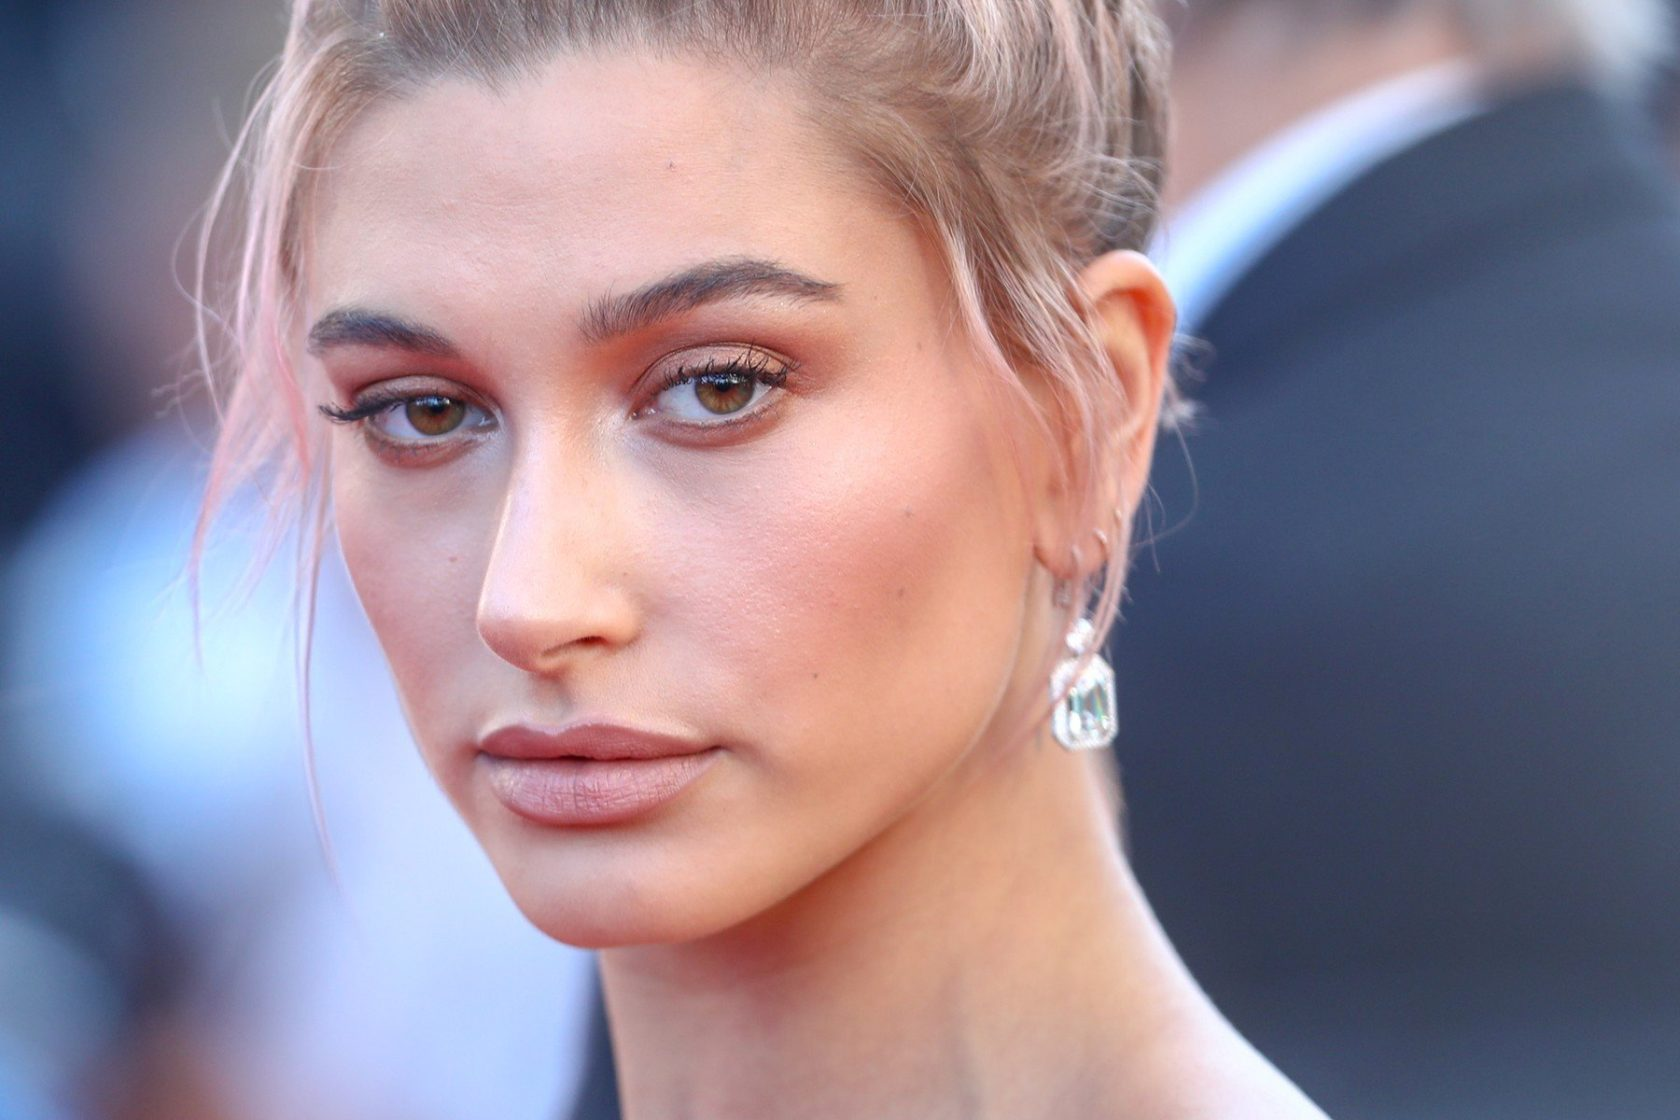 Hailey Baldwin attends the screening of 'Girls Of The Sun (Les Filles Du Soleil)' during the 71st annual Cannes Film Festival at Palais des Festivals on May 12, 2018 in Cannes, France.